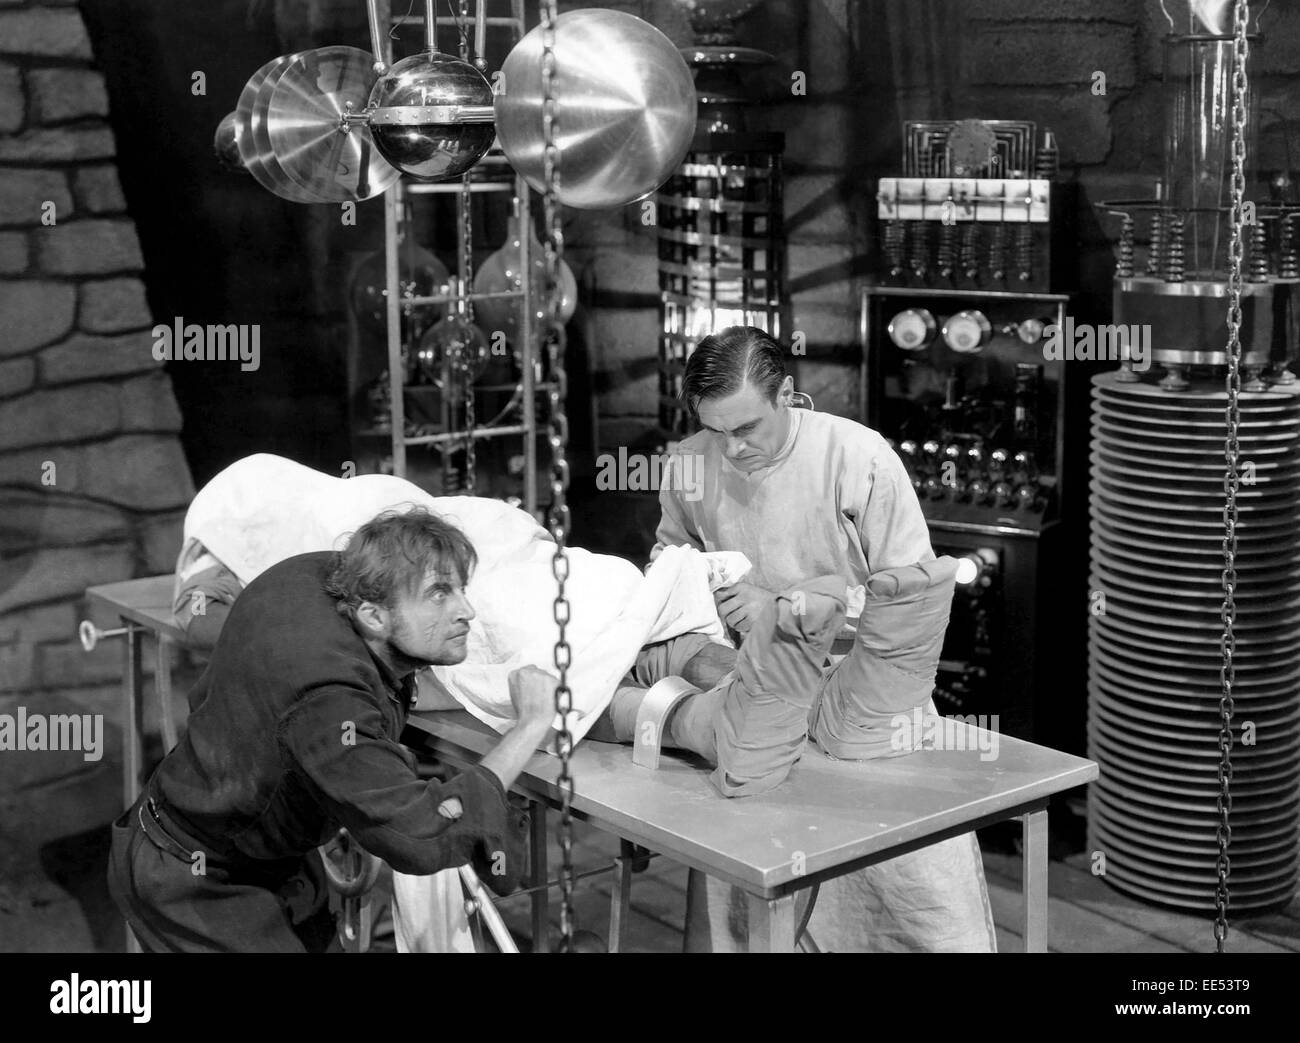 Dwight Frye, Colin Clive, on-set of the Film, 'Frankenstein', 1931 - Stock Image